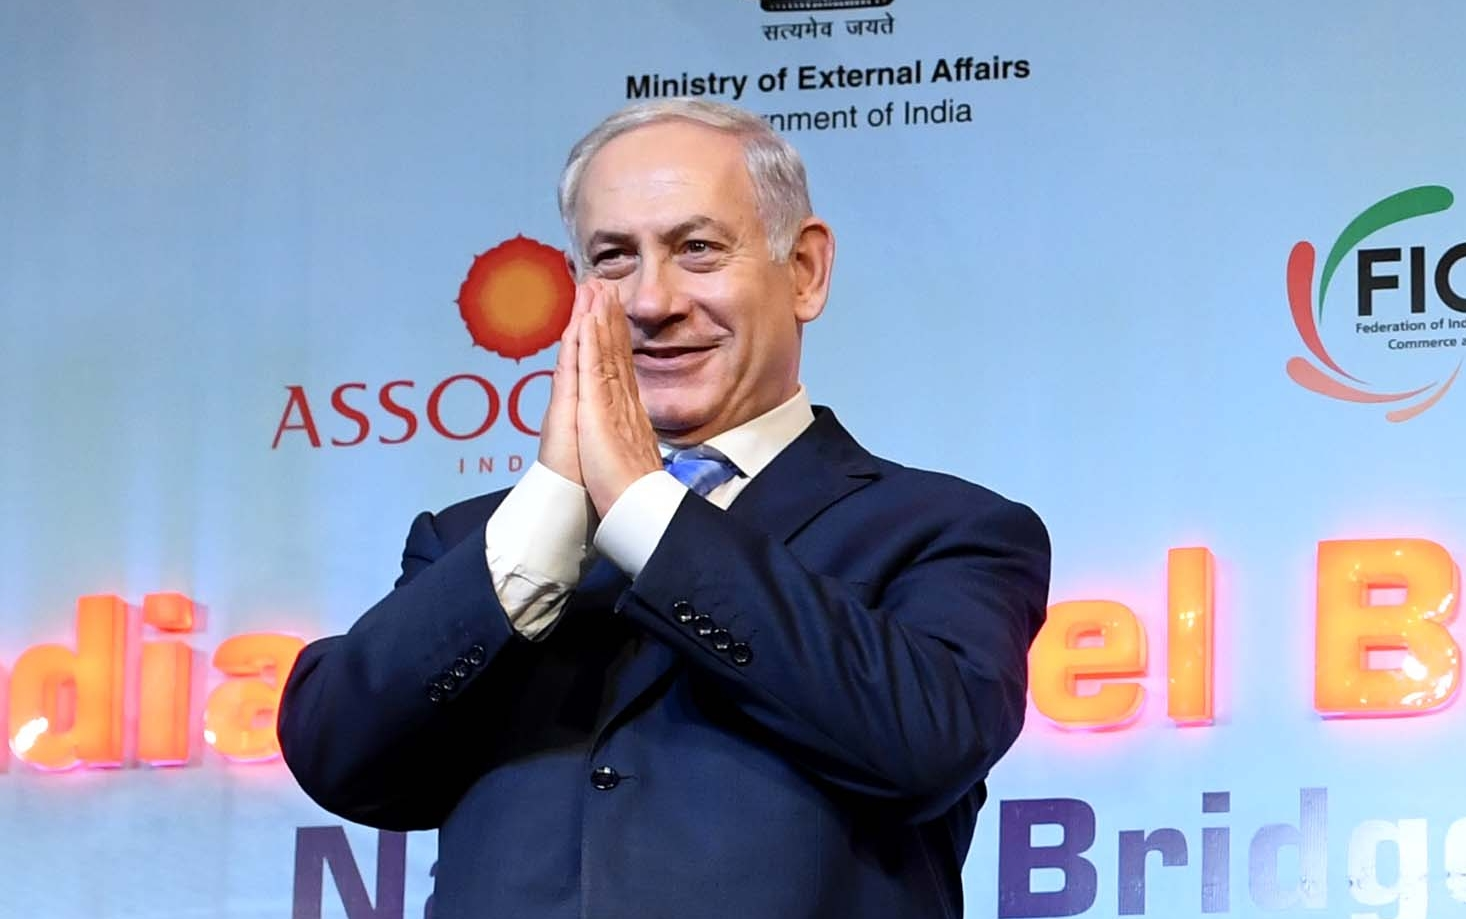 Prime Minister Benjamin Netanyahu and Indian Prime Minister Narendra Modi at an Israeli Indian Economic Conference in New Delhi India